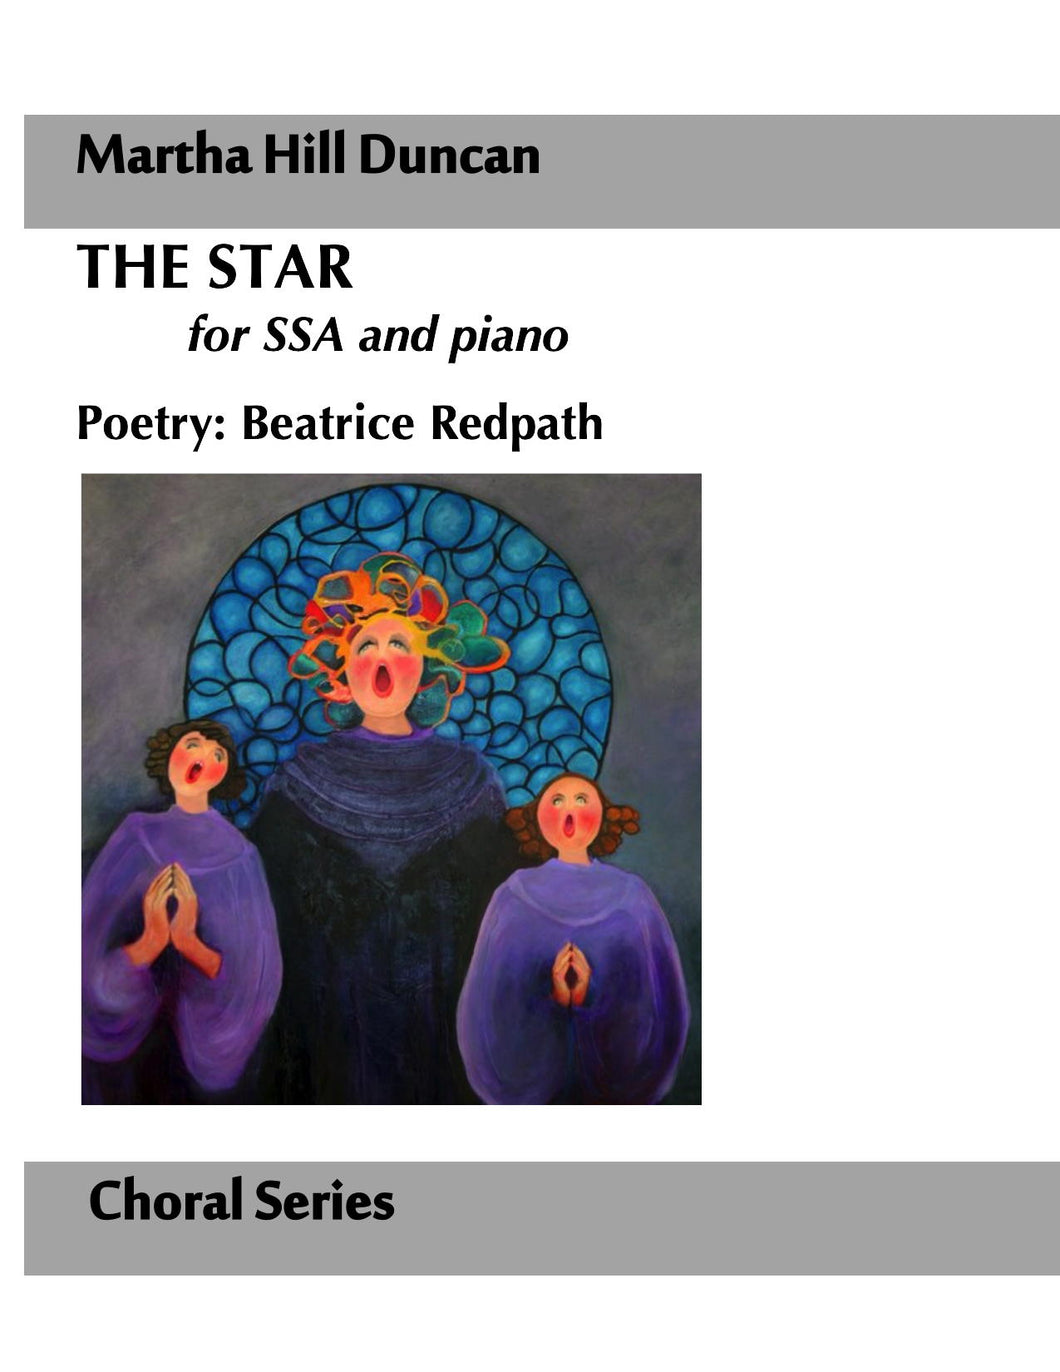 THE STAR FOR SSA AND PIANO